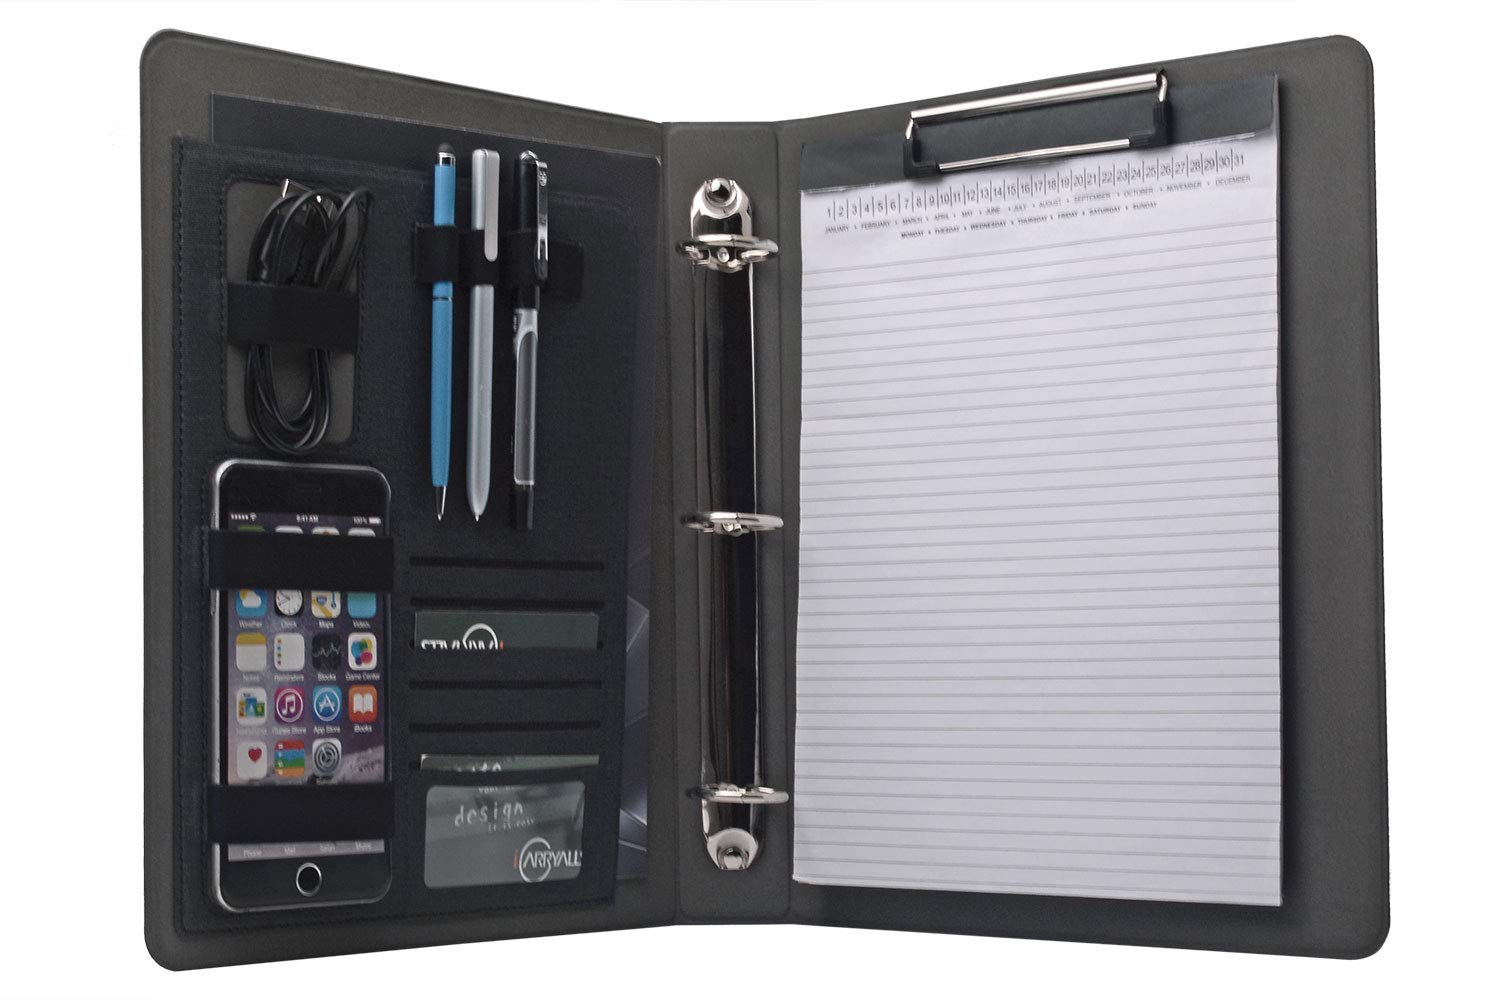 3 Ring Binder Portfolio Organizer, Business Padfolio with 1.5 inches 3-Ring Binder for Letter Size A4 Notepad Papers